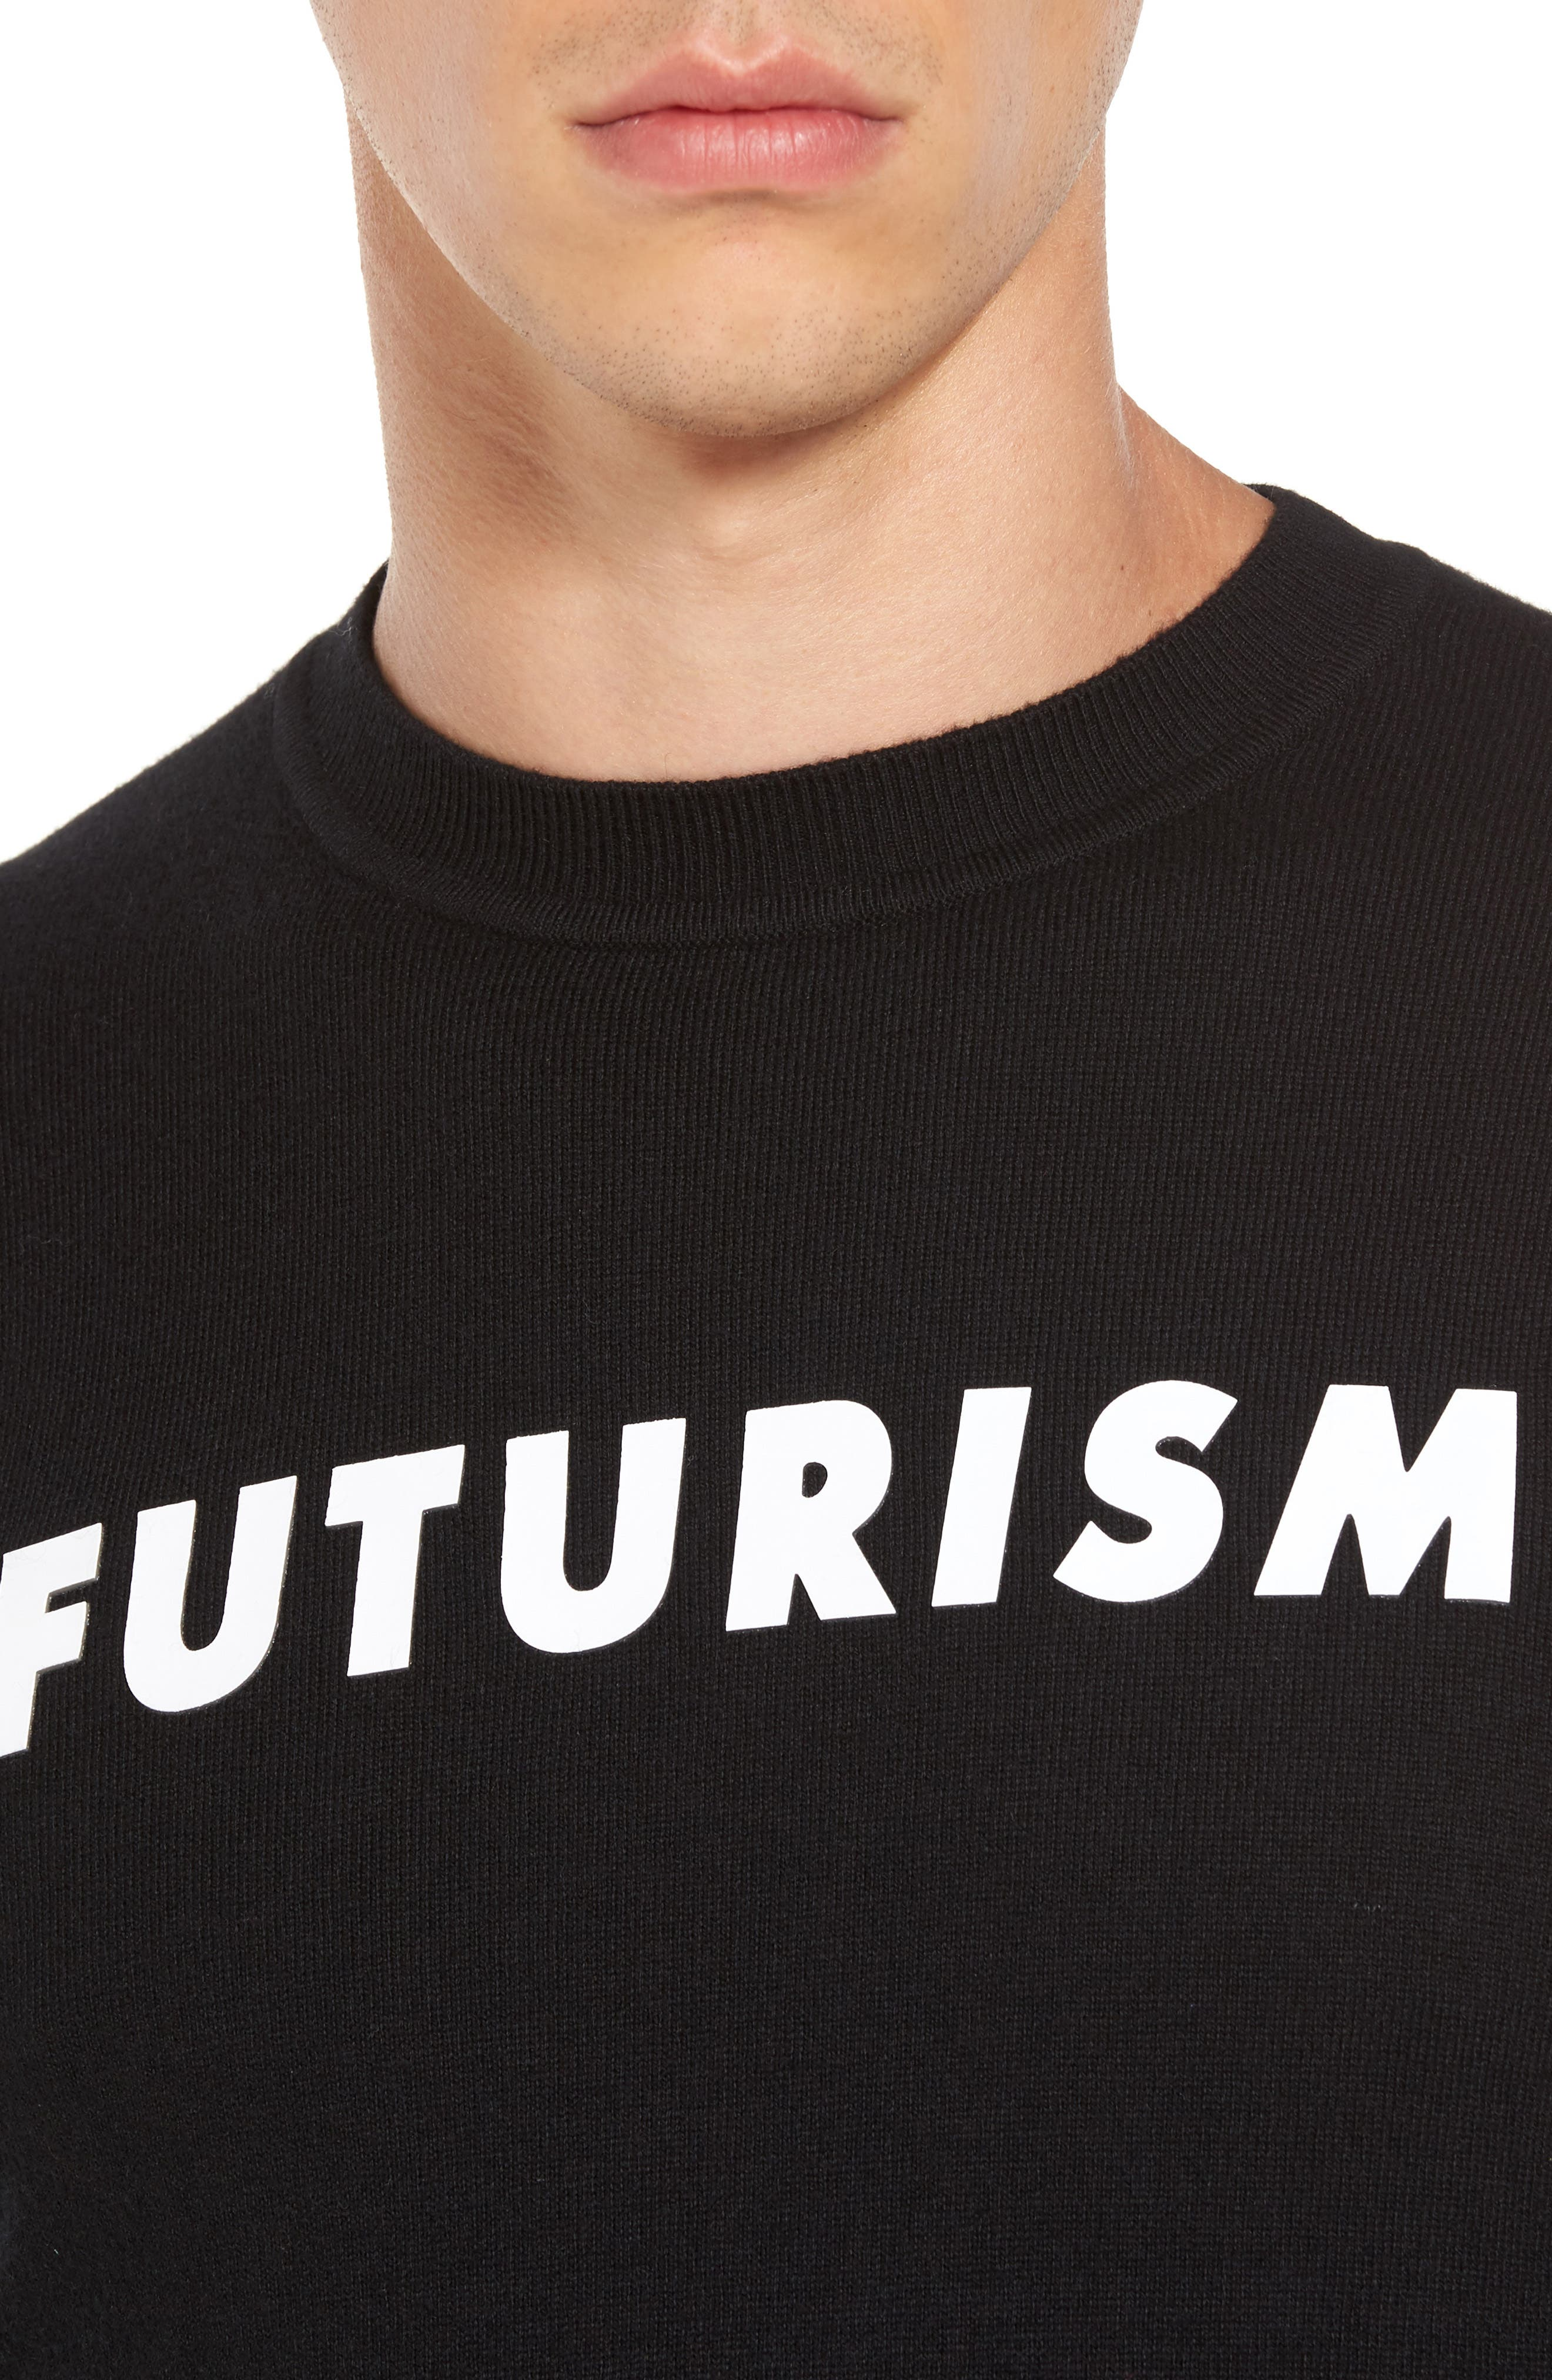 Futurism Graphic Sweater,                             Alternate thumbnail 4, color,                             001